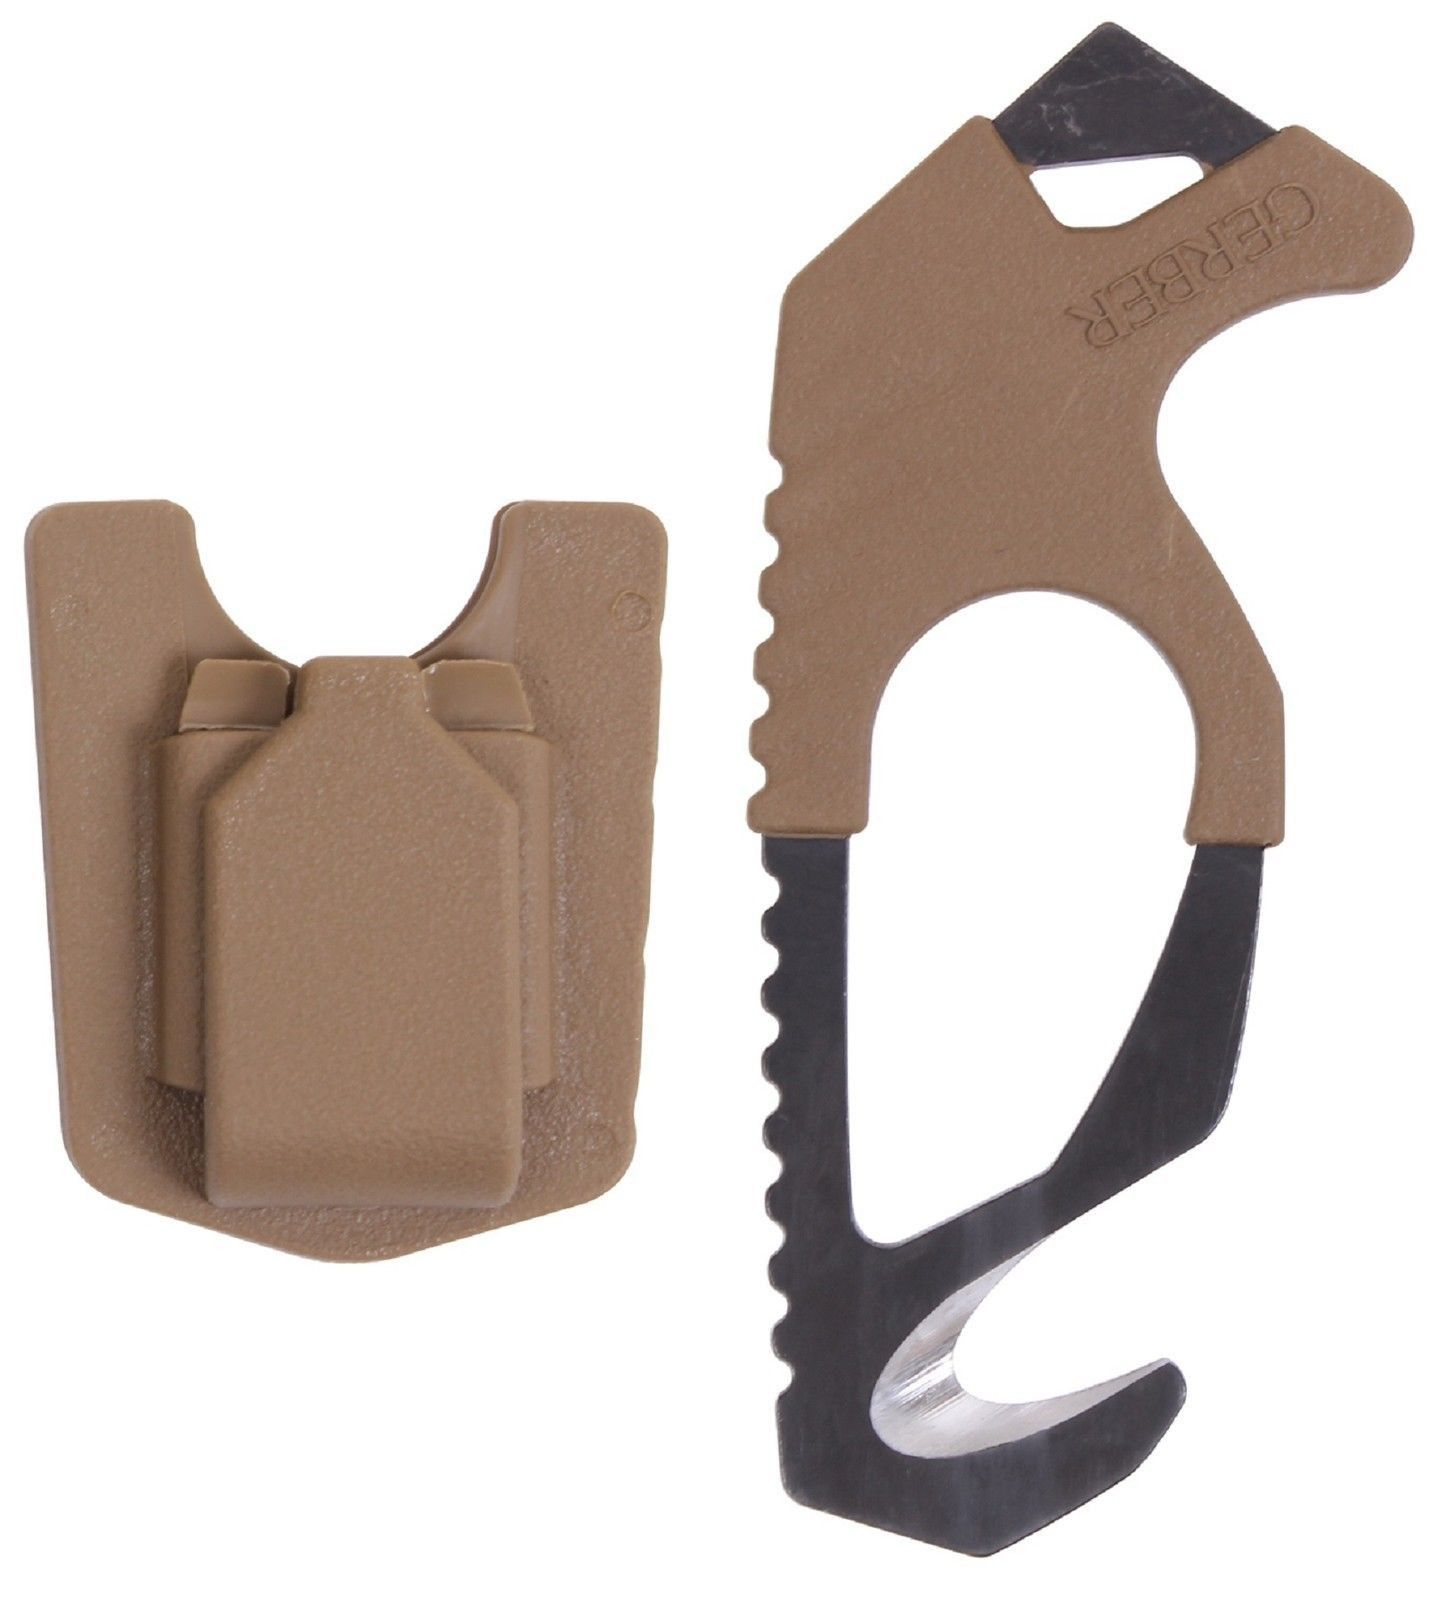 "Gerber Seatbelt & Nylon Strap Cutter - 5"" Compact Safety Rescue Blade (~$15-20)"